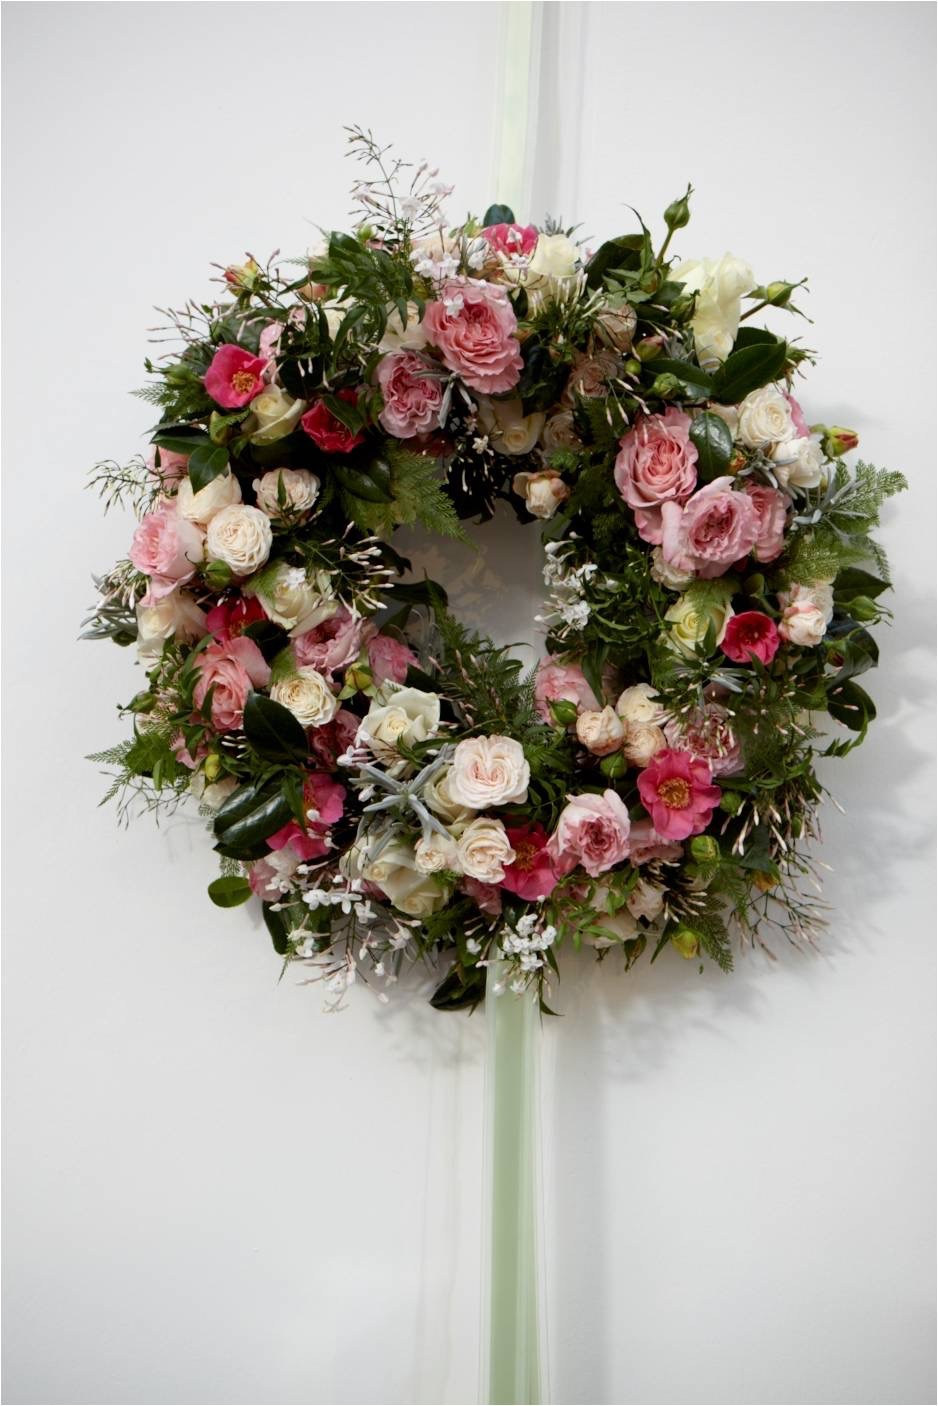 Wreath pinks and green (nws2010).jpg